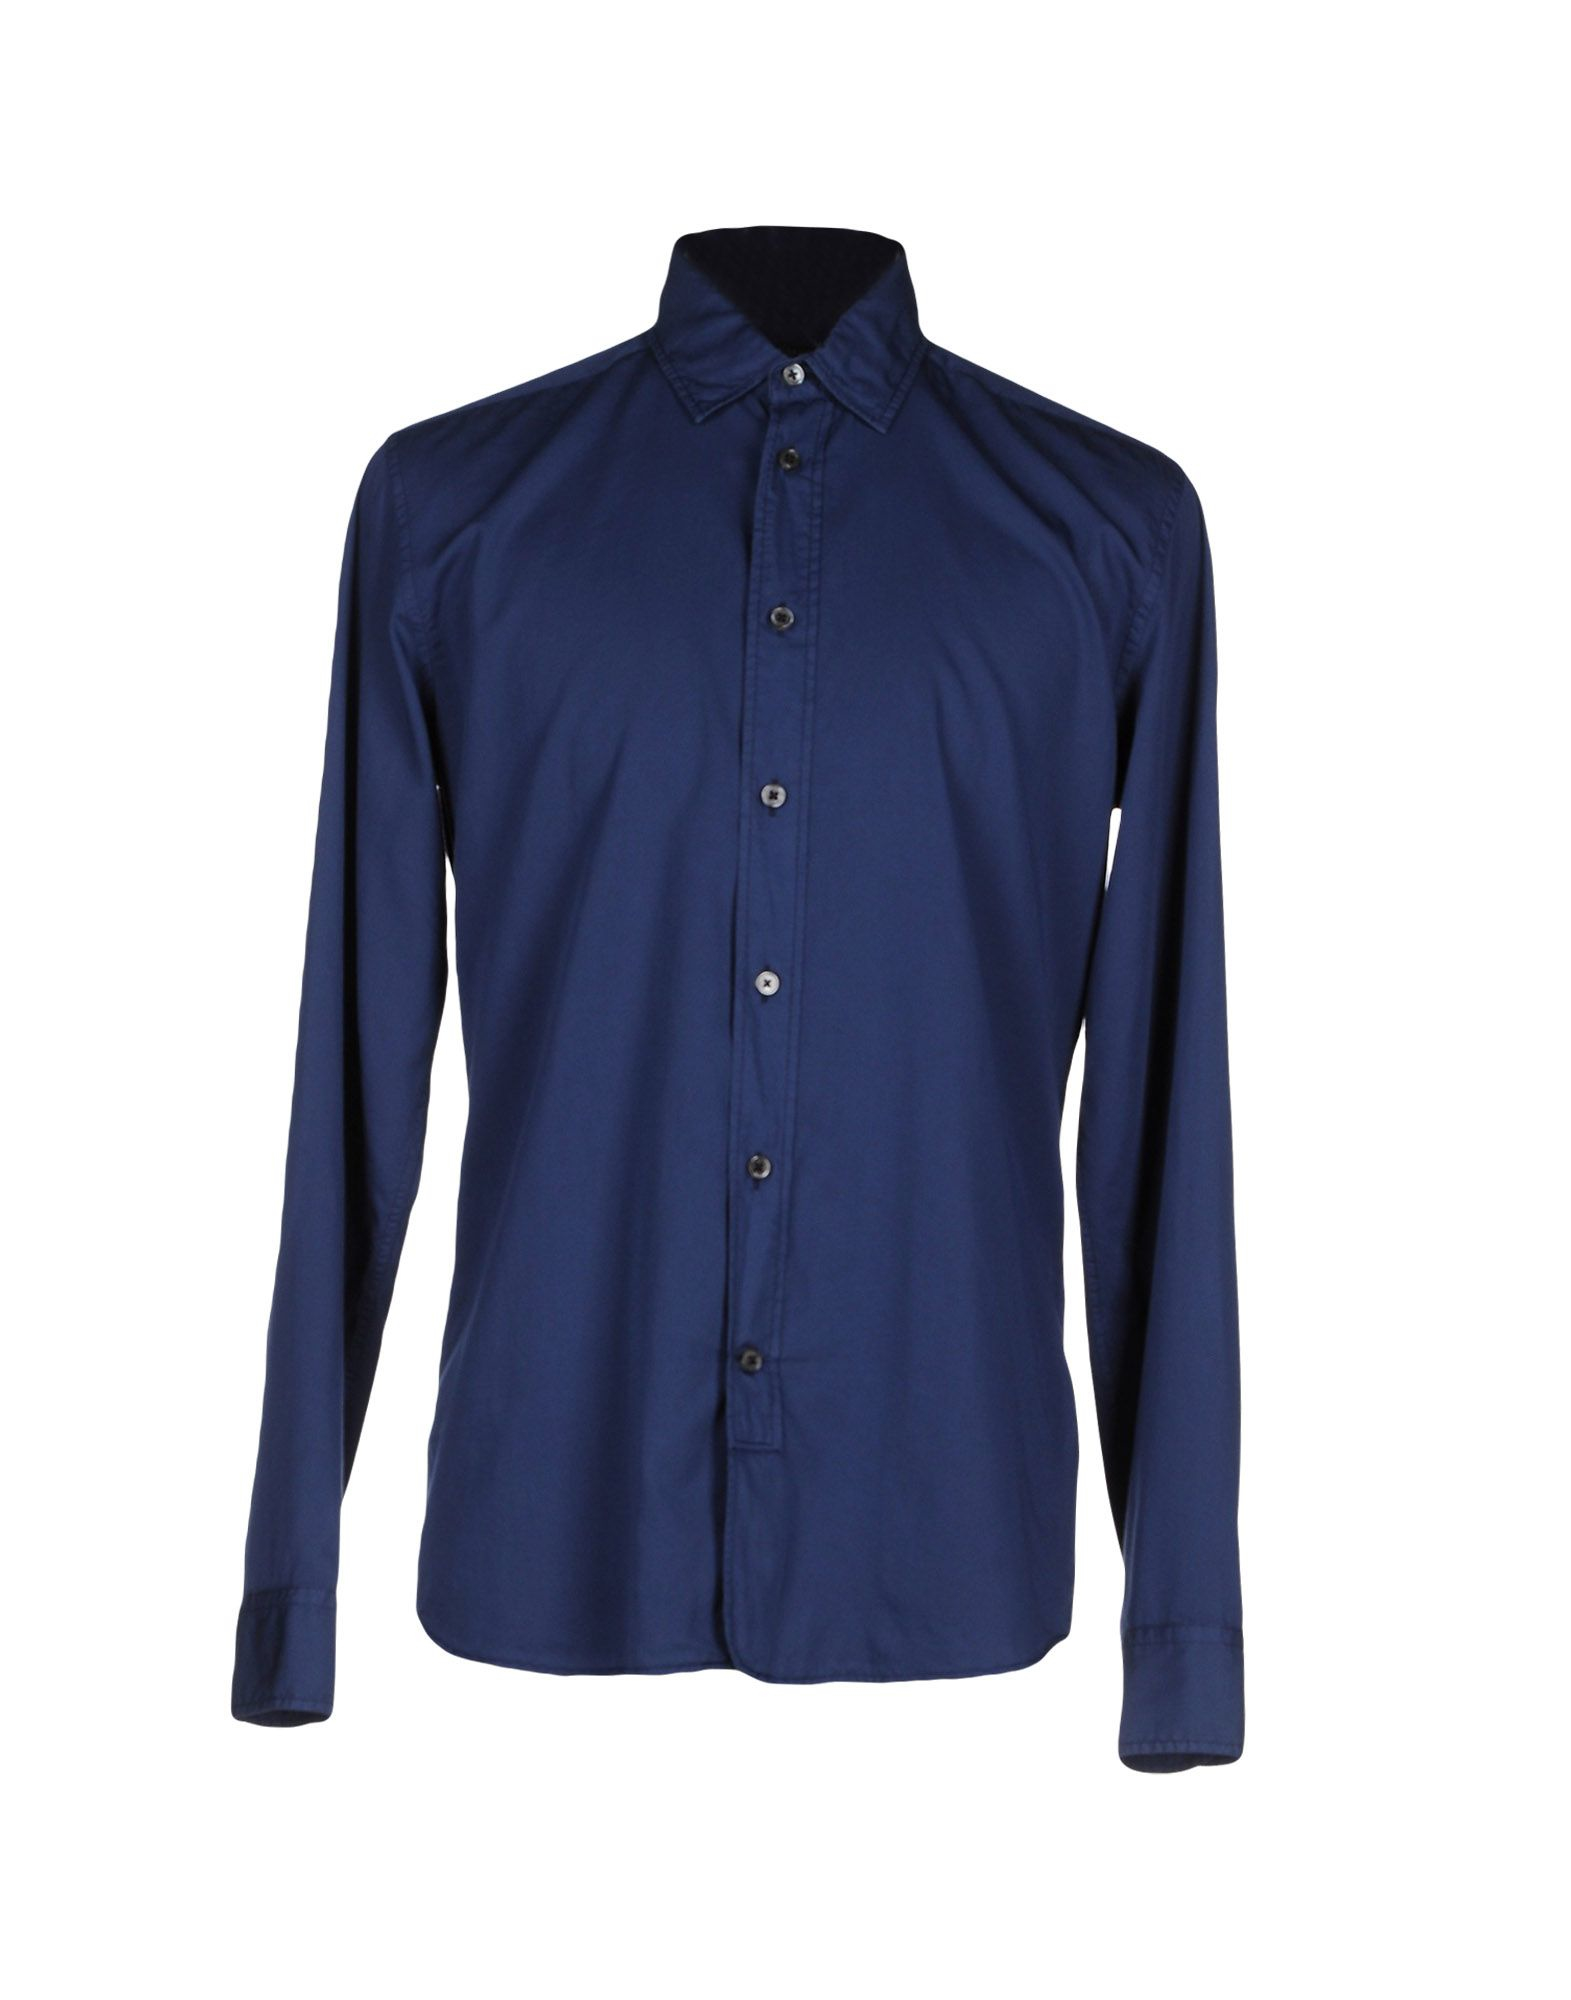 Marc jacobs Shirt in Blue for Men | Lyst